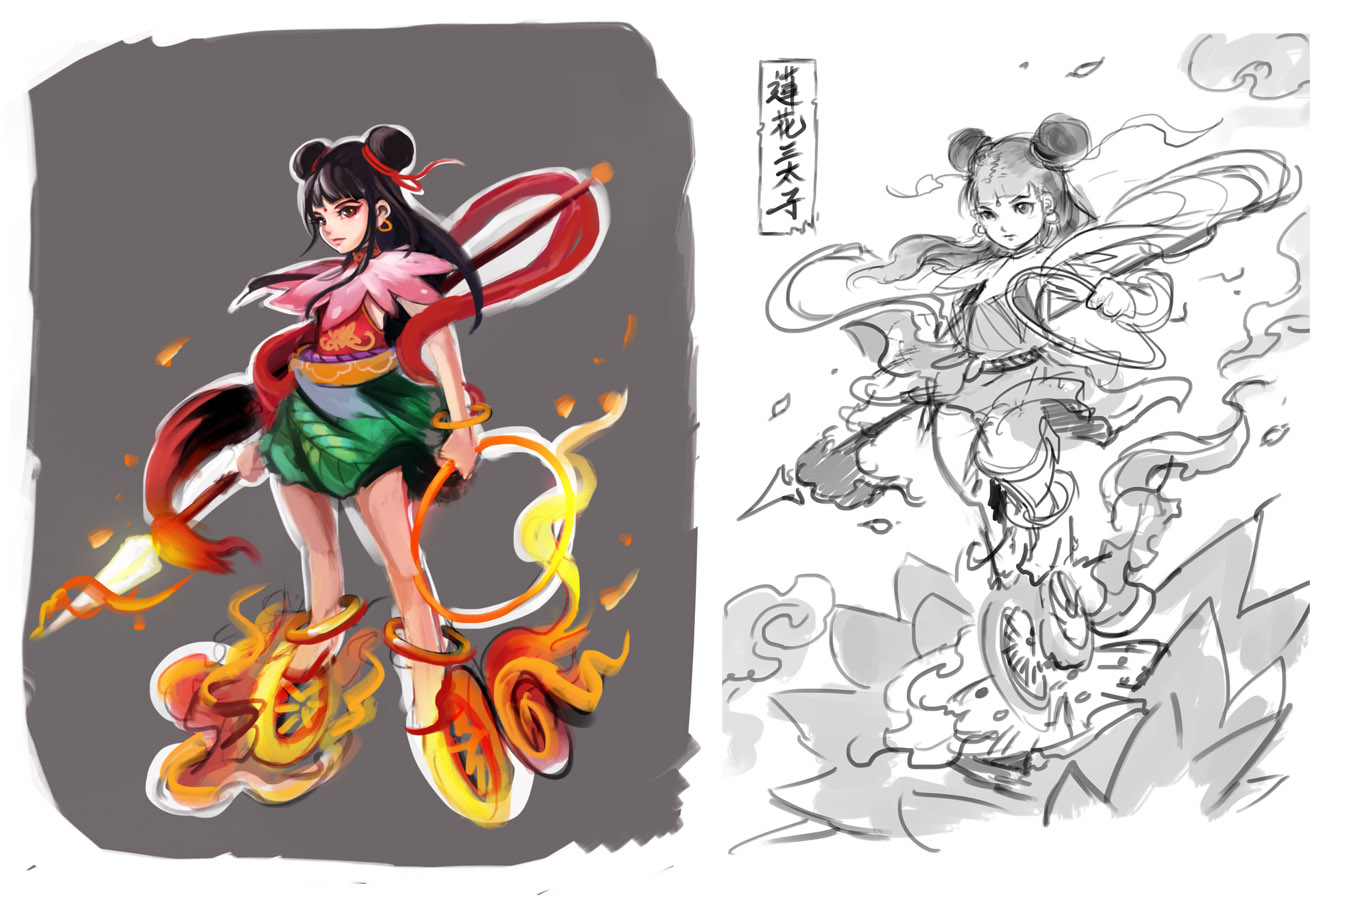 Nezha by muju on DeviantArt.